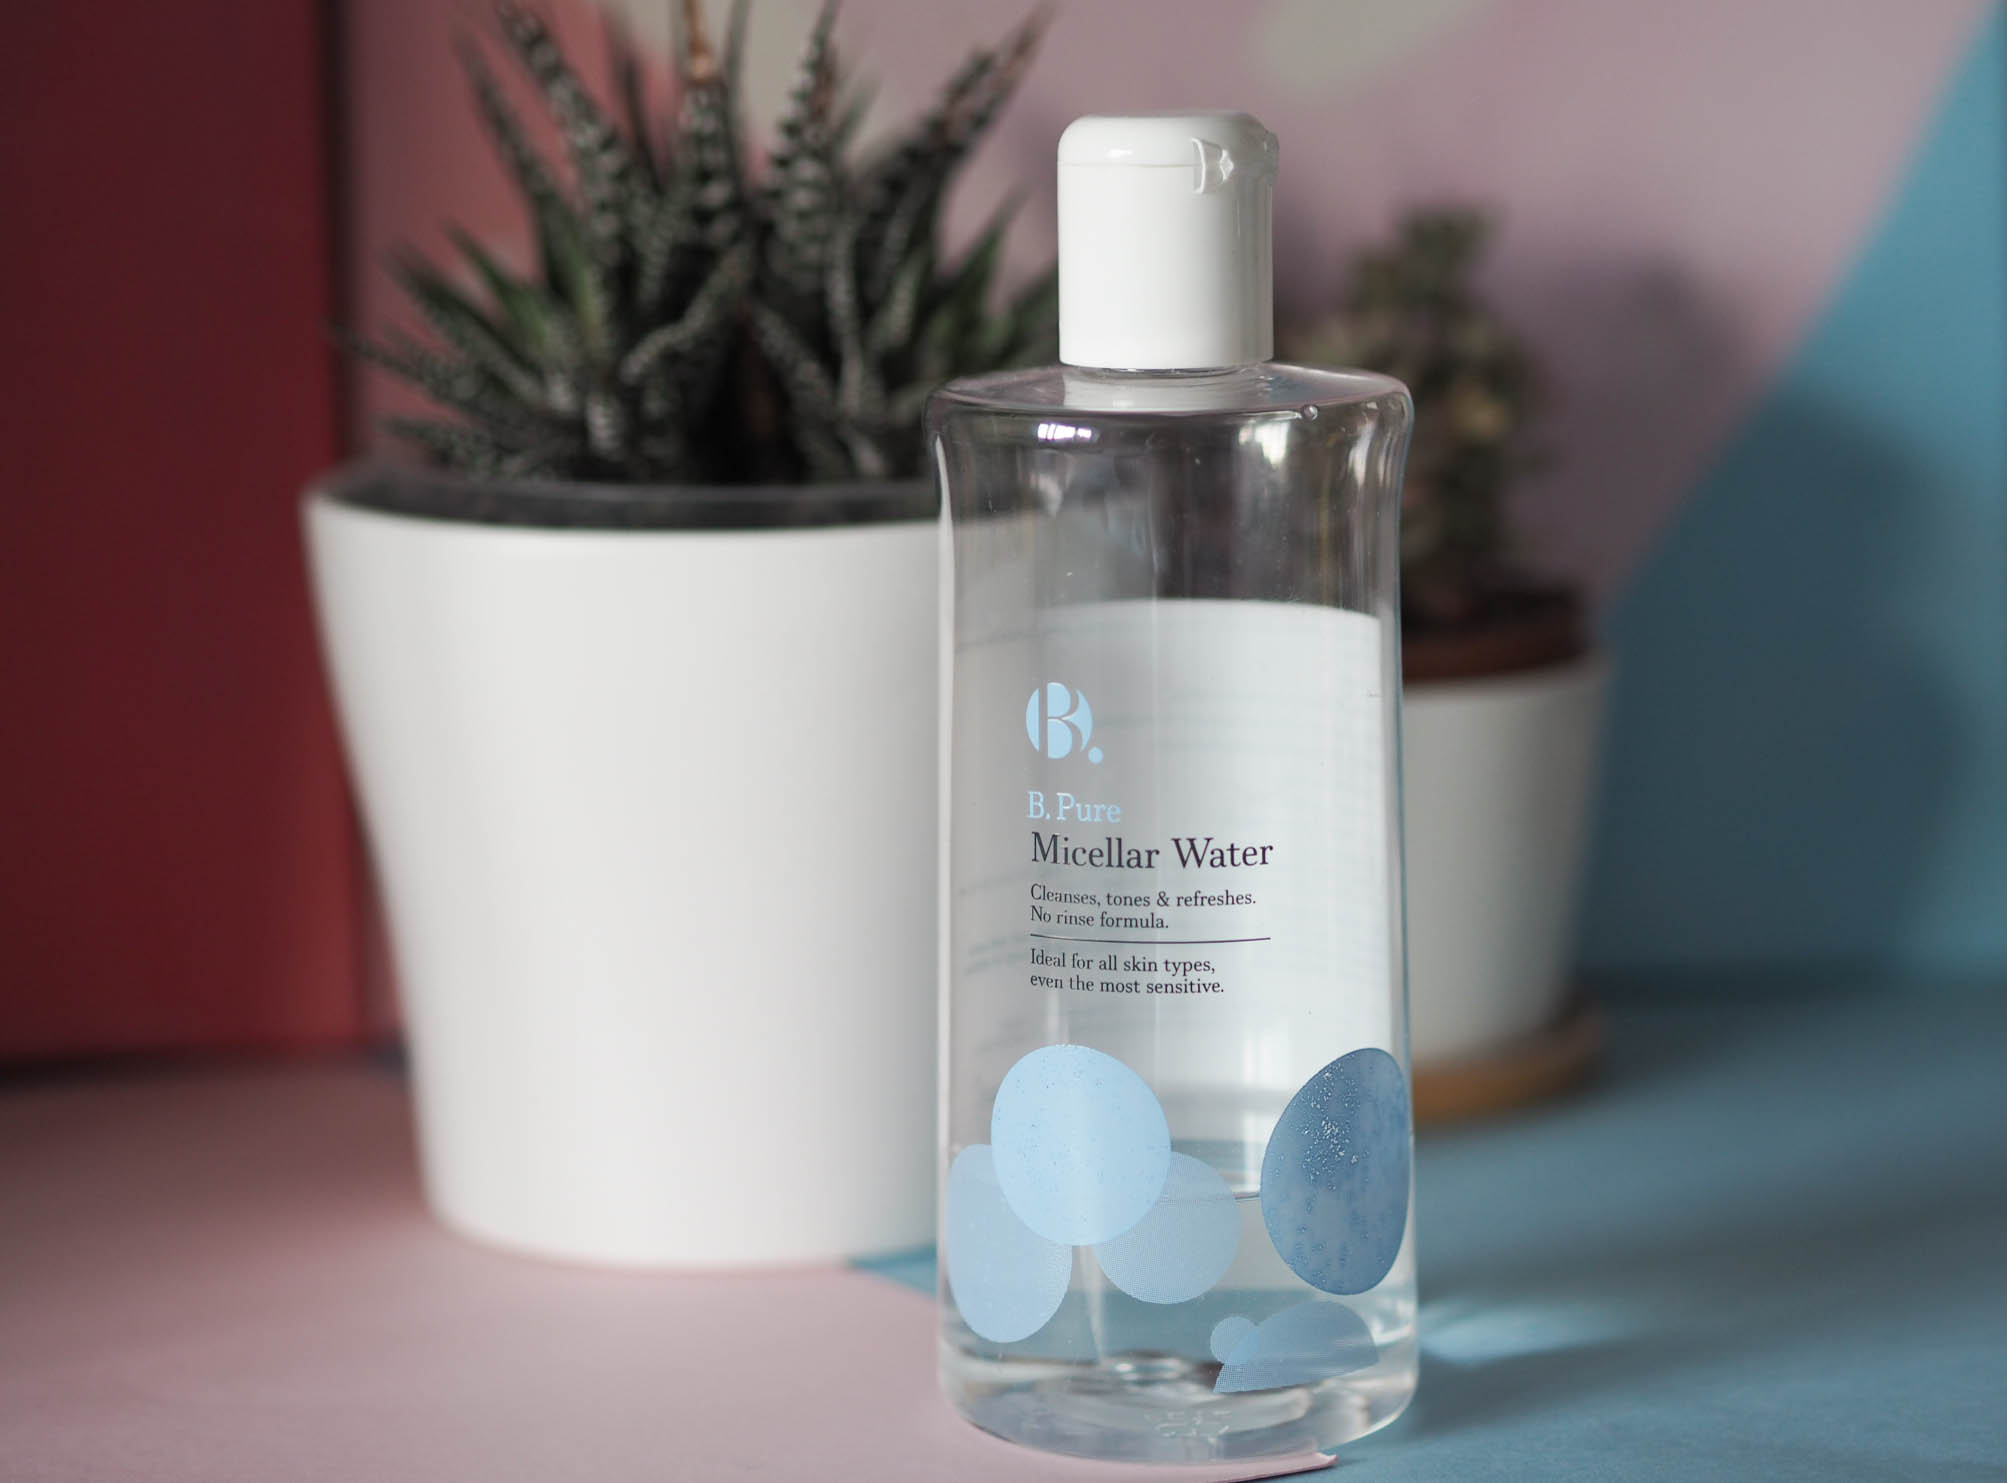 B. Pure Micellar water in front of two succulent plants in white pots (landscape orientation)